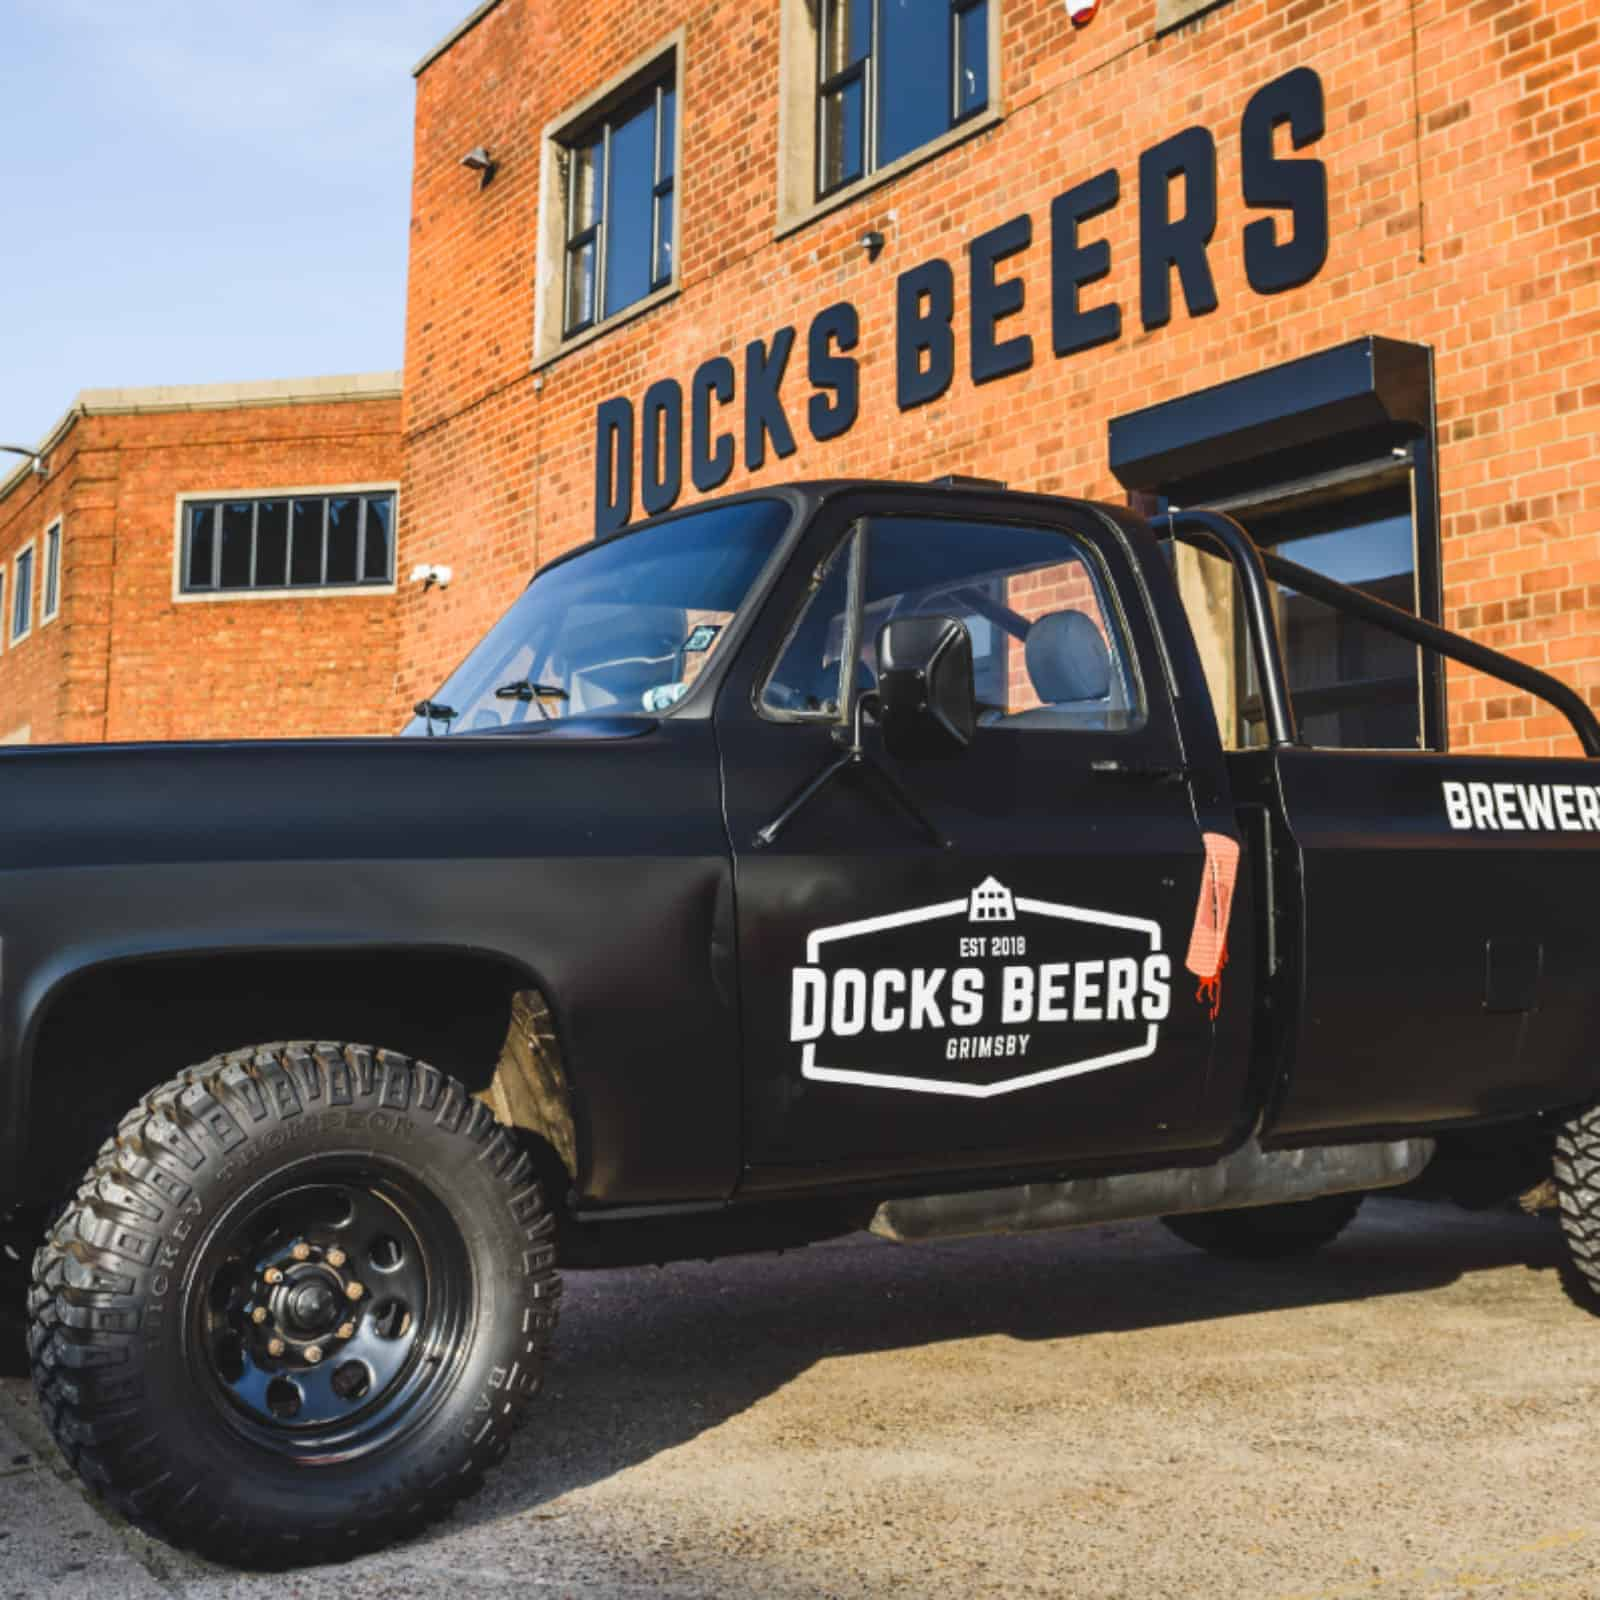 Docks Beers Branded 1979 Chevrolet GMC Pick-Up